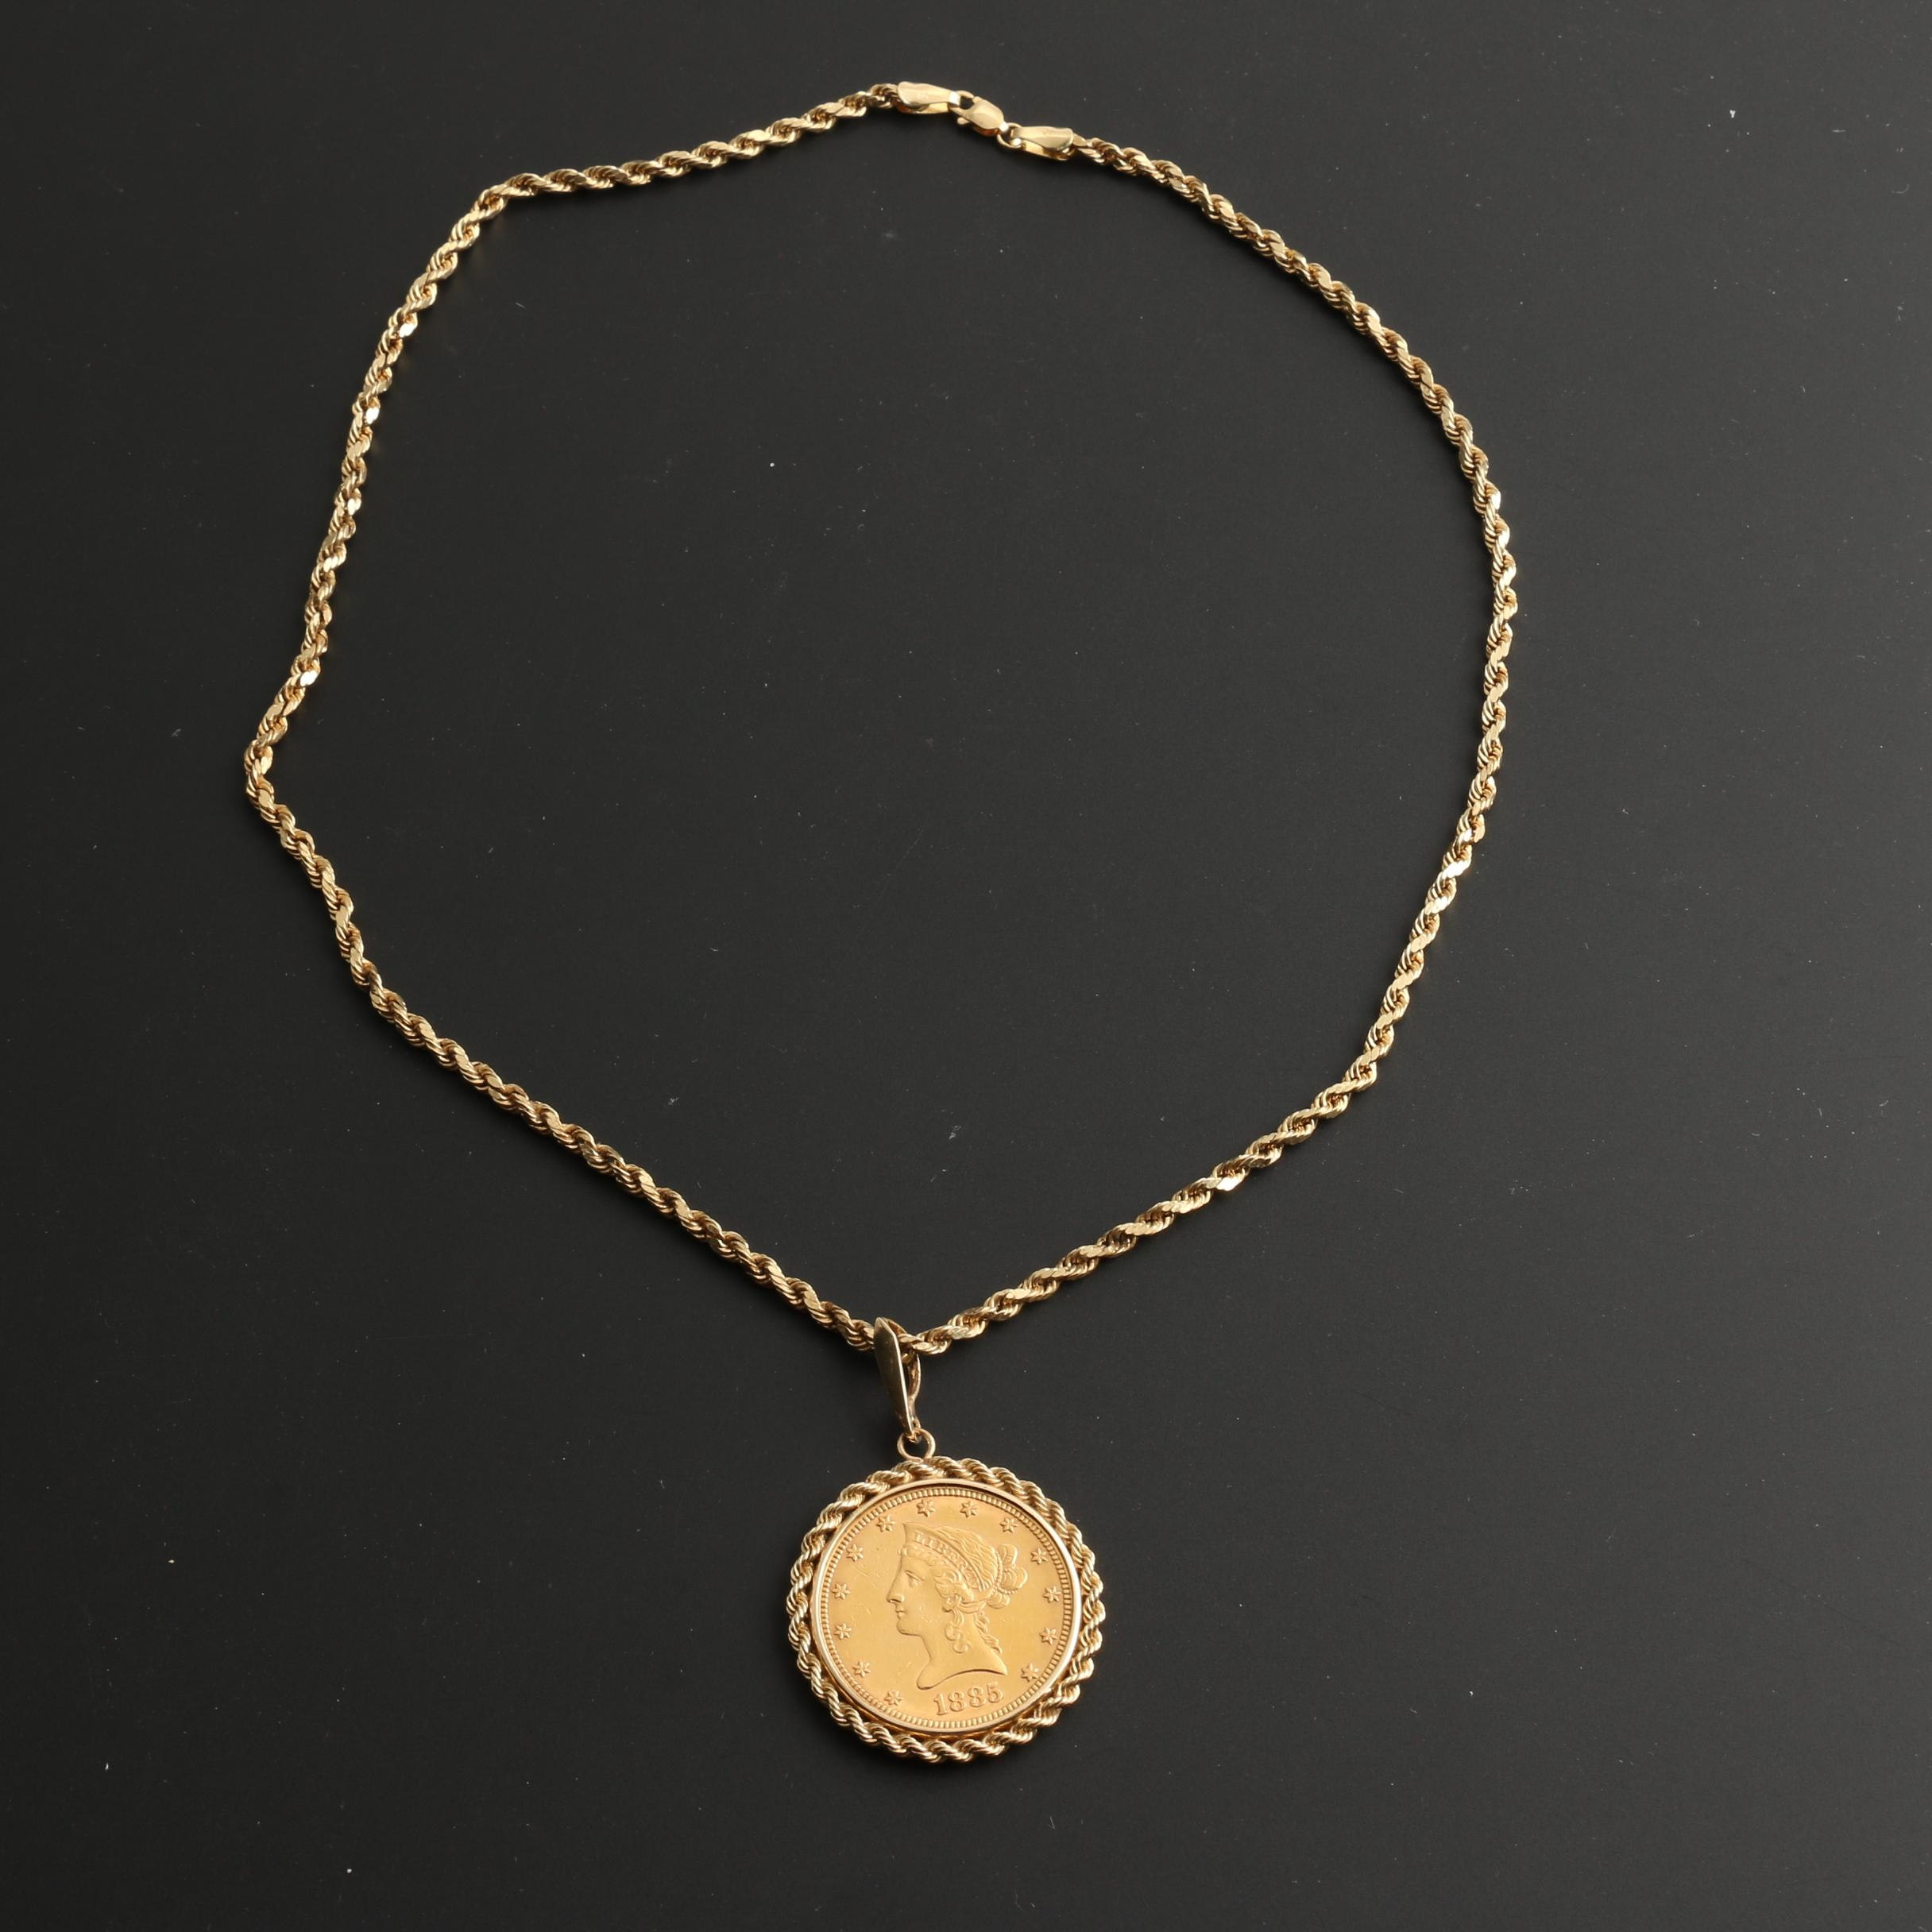 1885 Liberty Head $10 Gold Coin Necklace